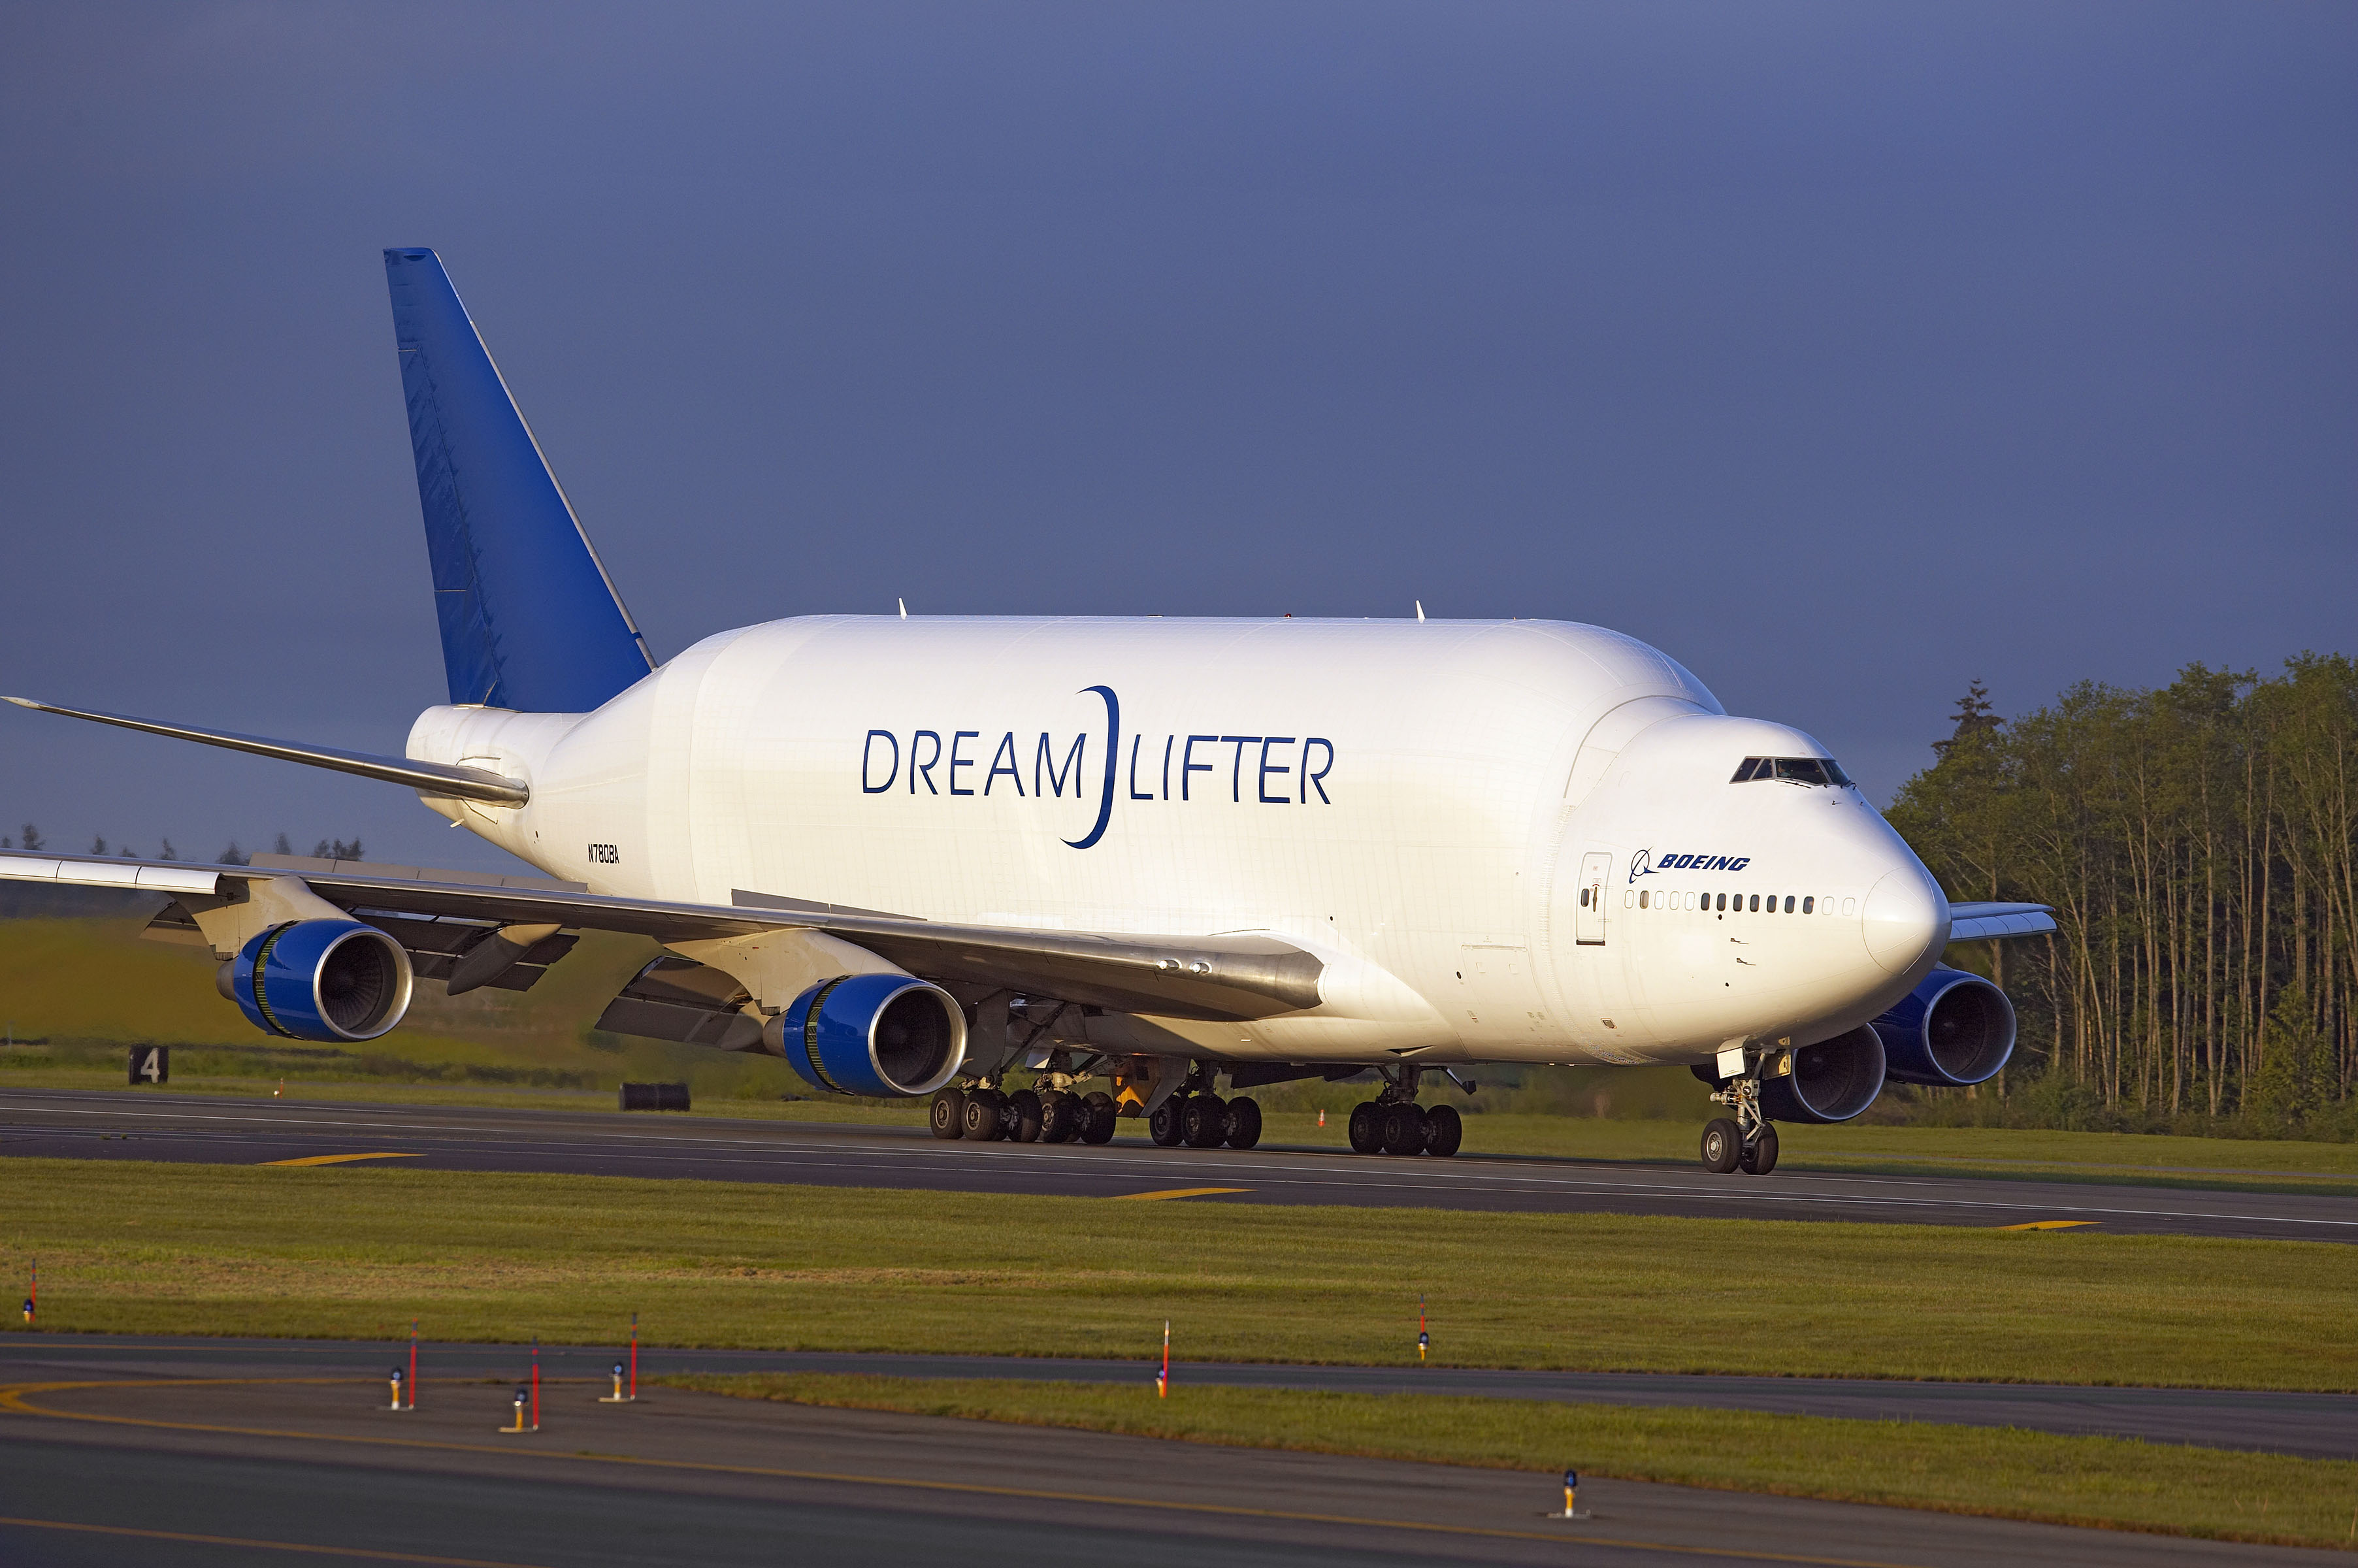 The Boeing Dreamlifter shuttles components for the 787 around the world. Photo: Boeing